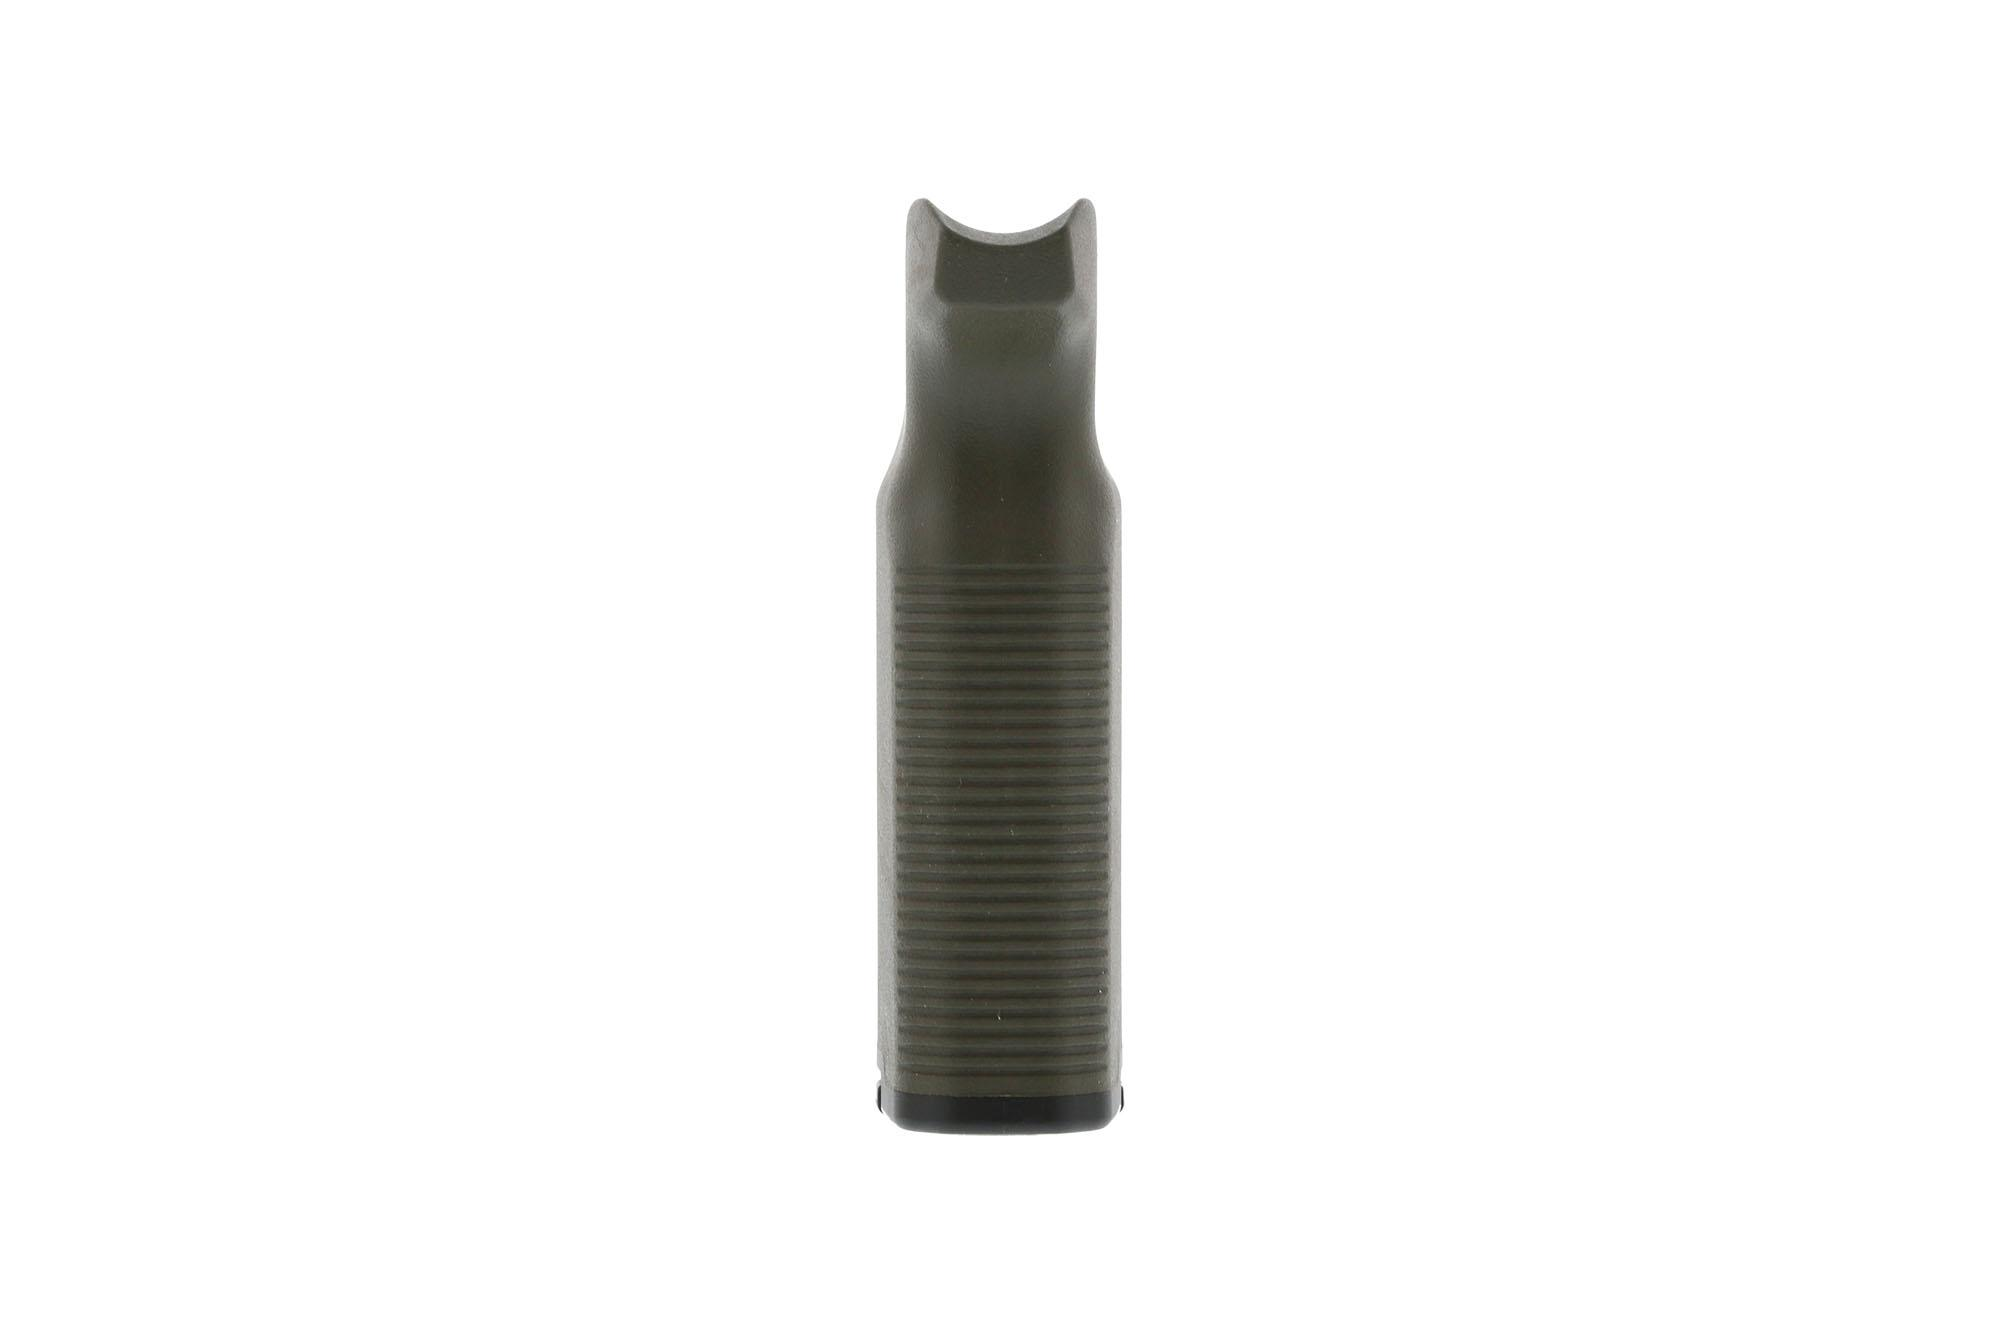 The MOE K2+ AR-15 pistol grip OD Green features a compartment for storing oil bottles